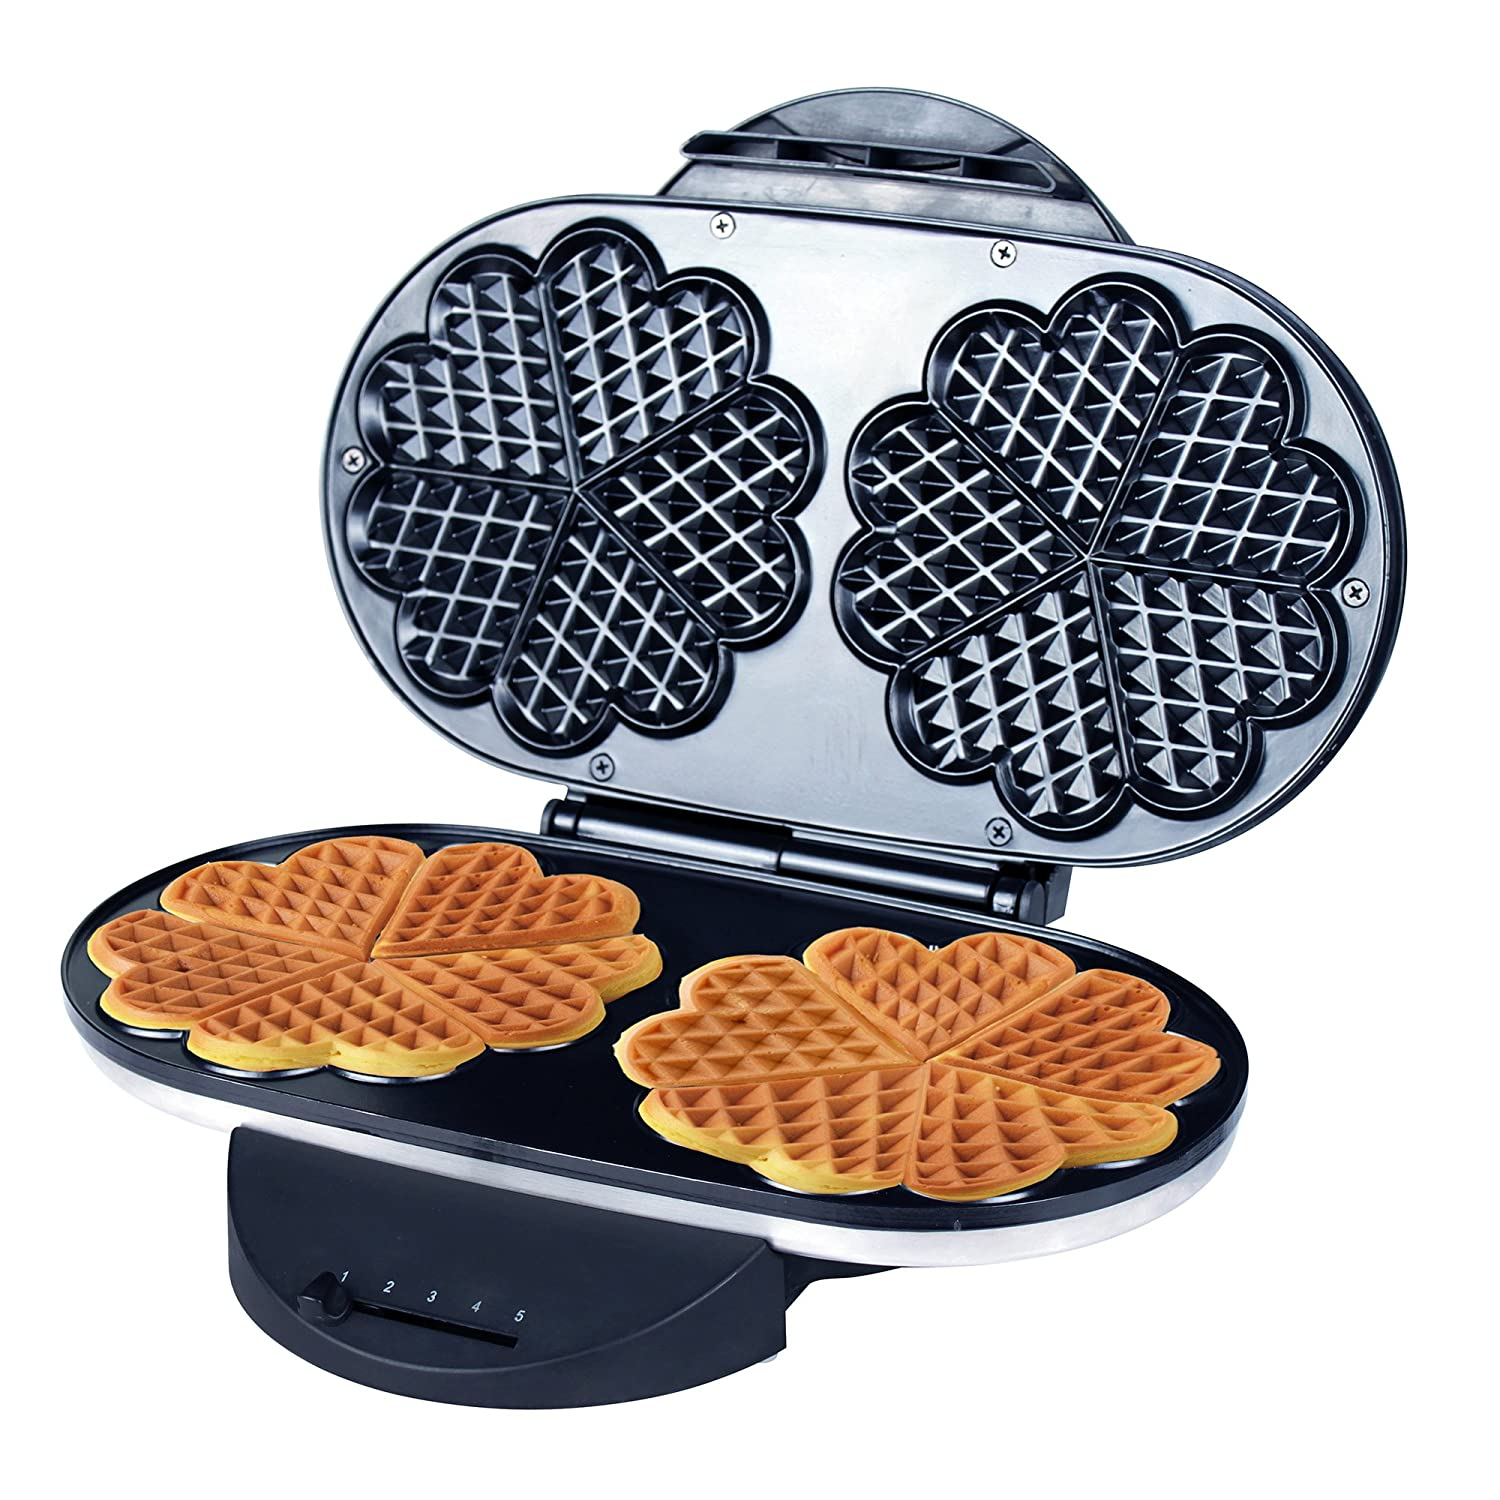 ZZ Heart Waffle Maker with Non-Stick Plate 1200W, Black/Silver